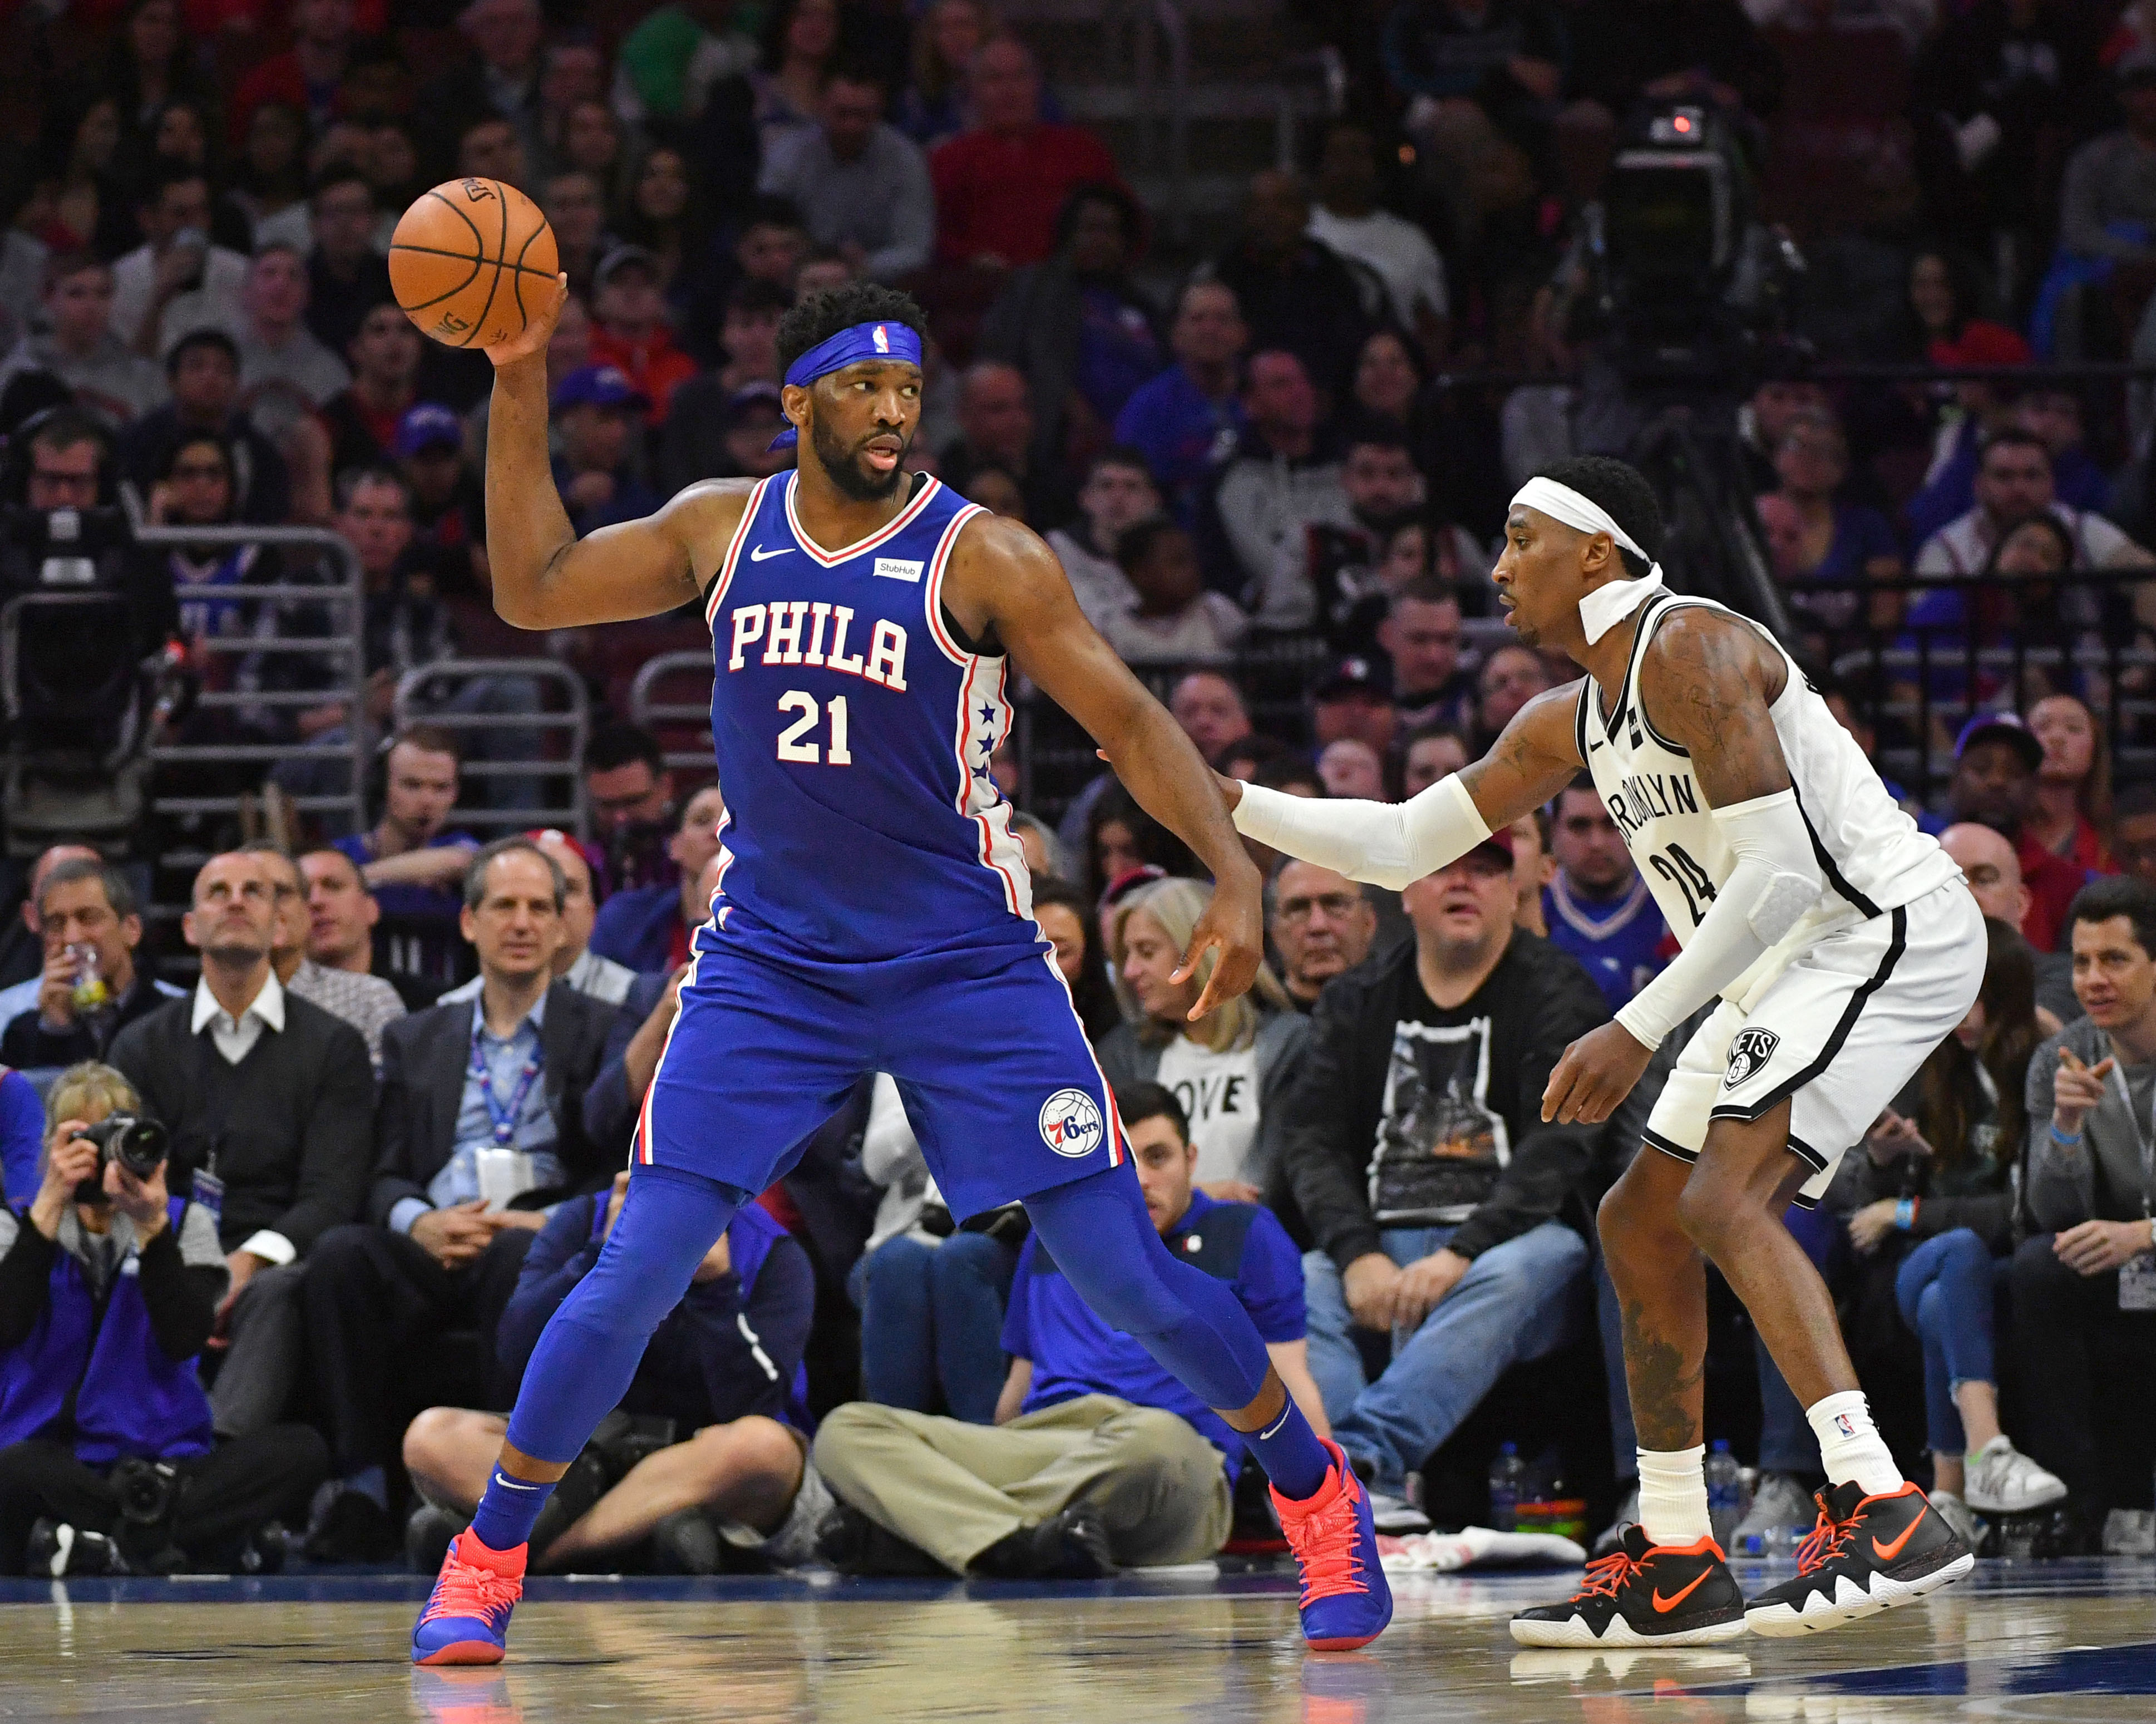 2019 NBA Playoffs: Three things to watch for in Sixers vs. Nets